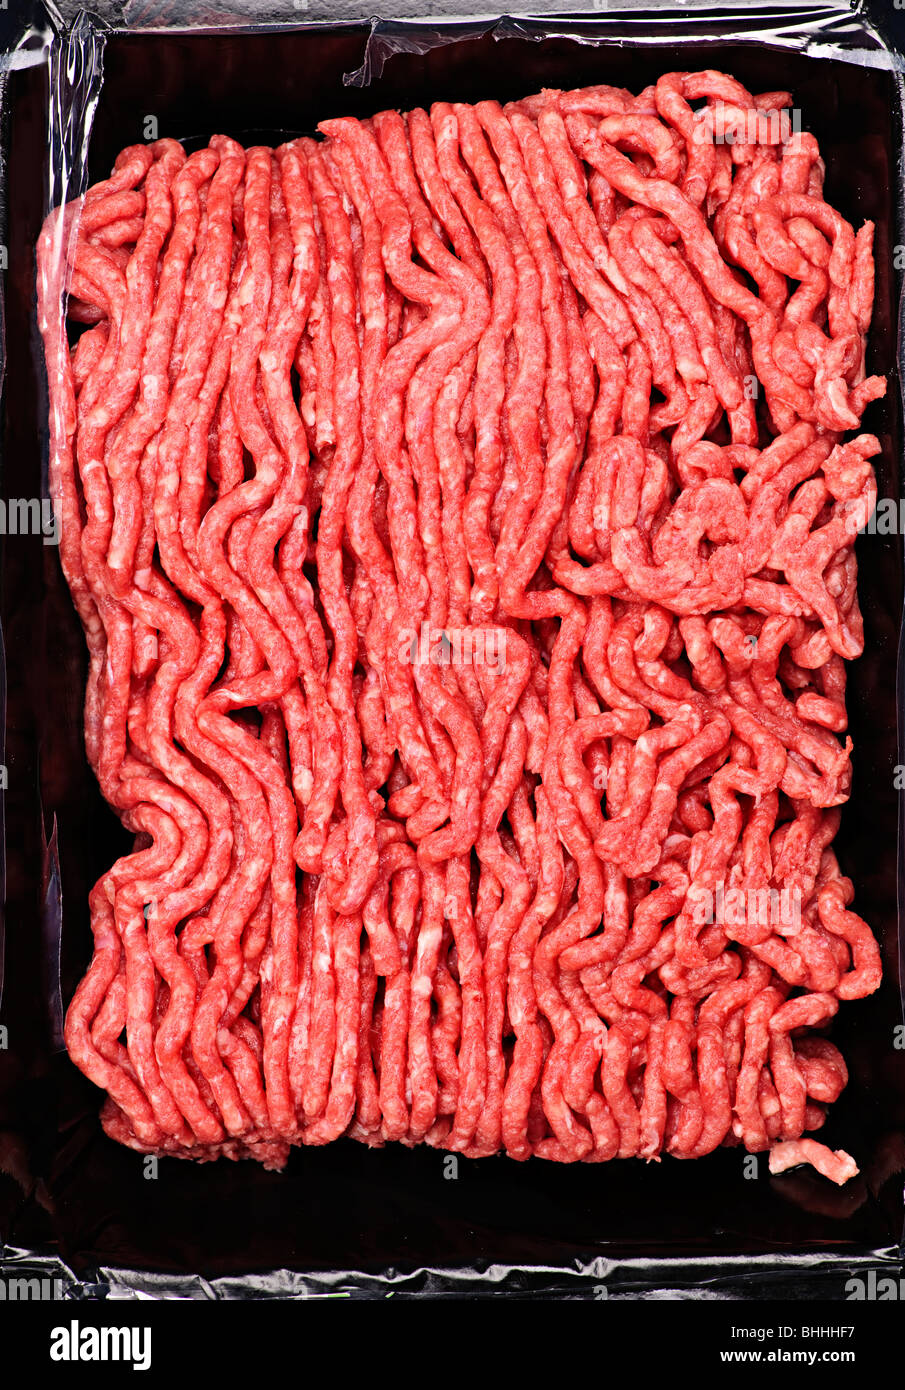 Close up on package of lean red raw ground meat - Stock Image